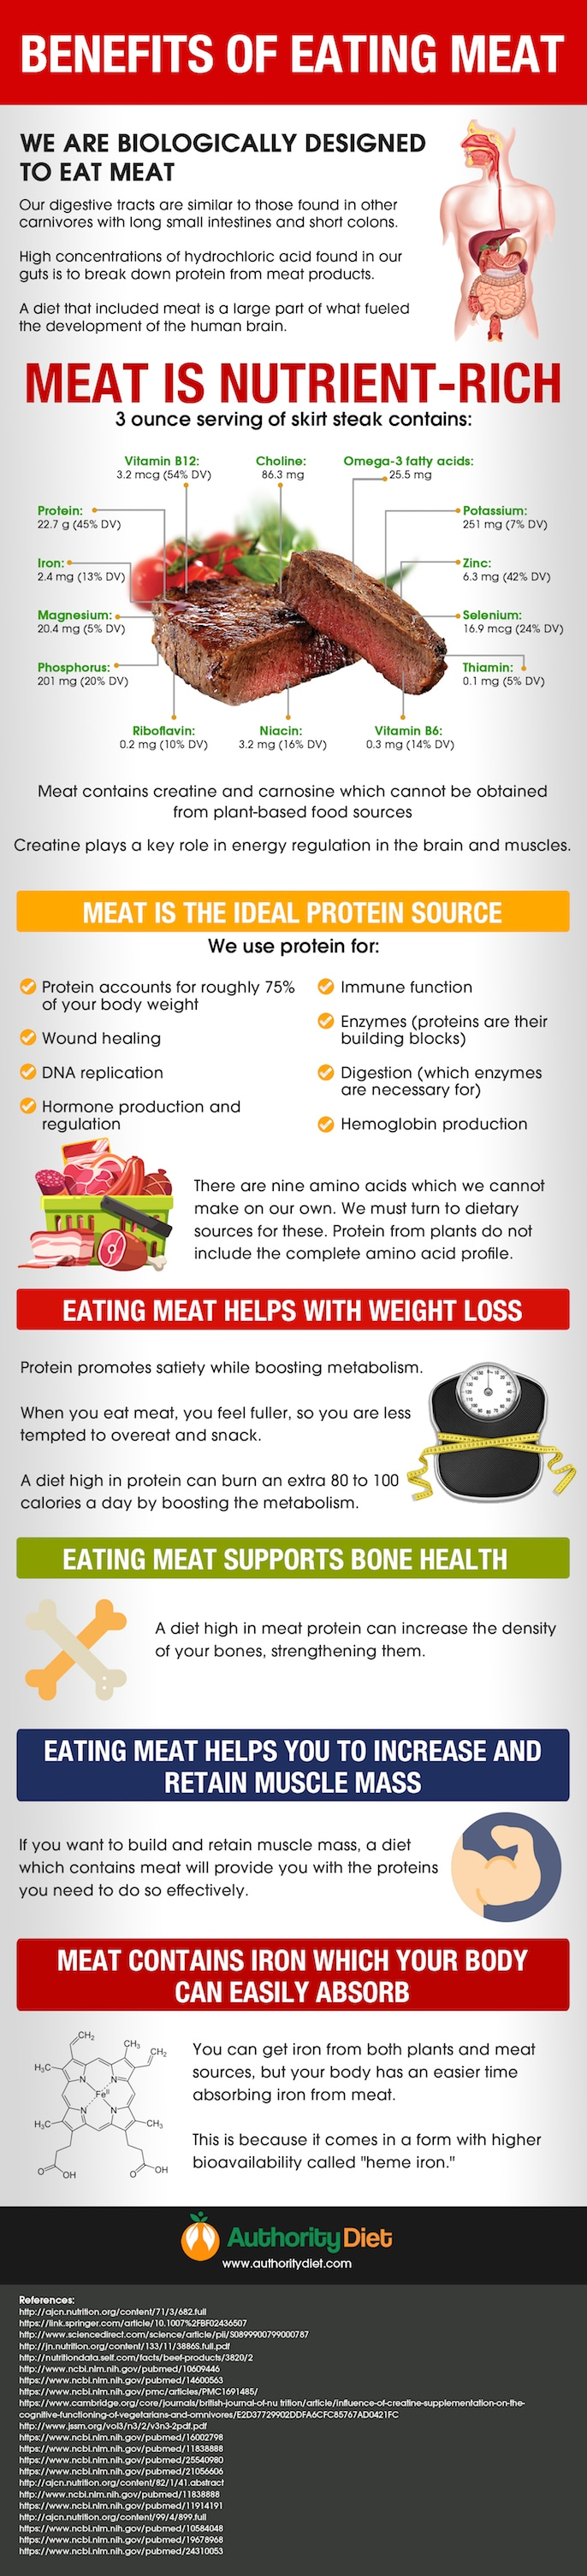 De-Demonizing Meat: Health Benefits of Eating Meat - Infographic